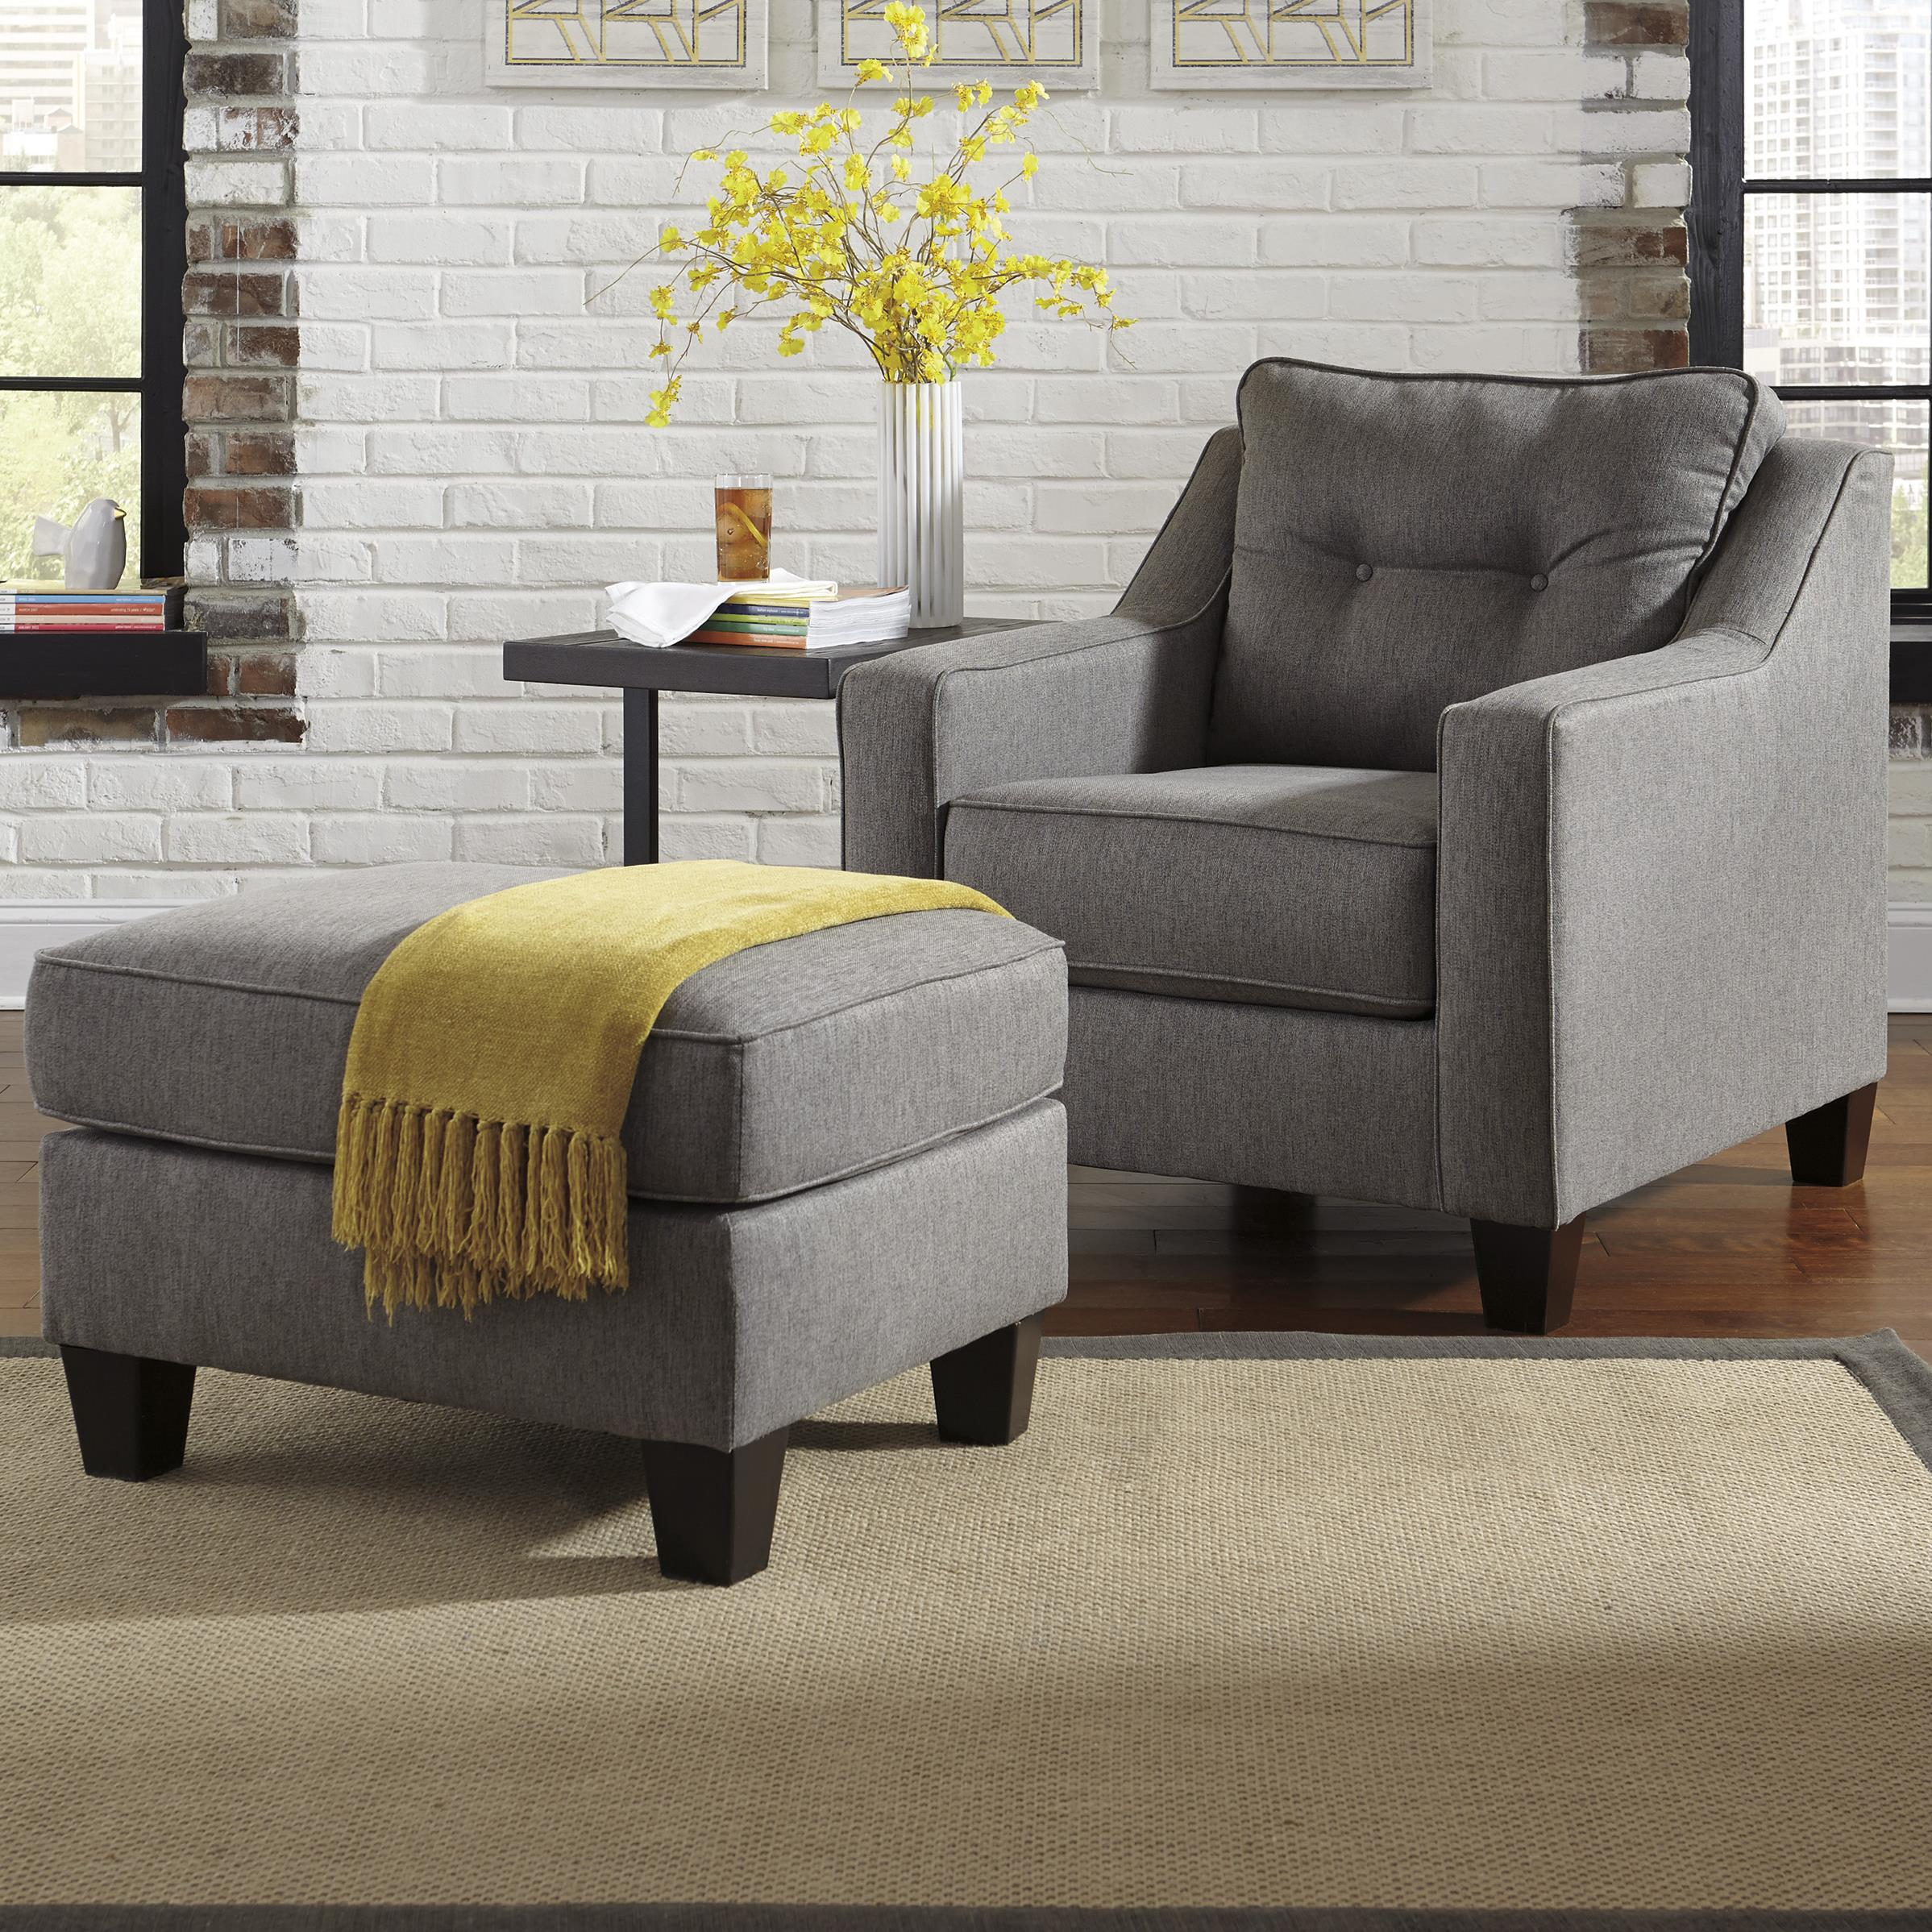 Benchcraft Brindon Chair & Ottoman - Item Number: 5390120+14